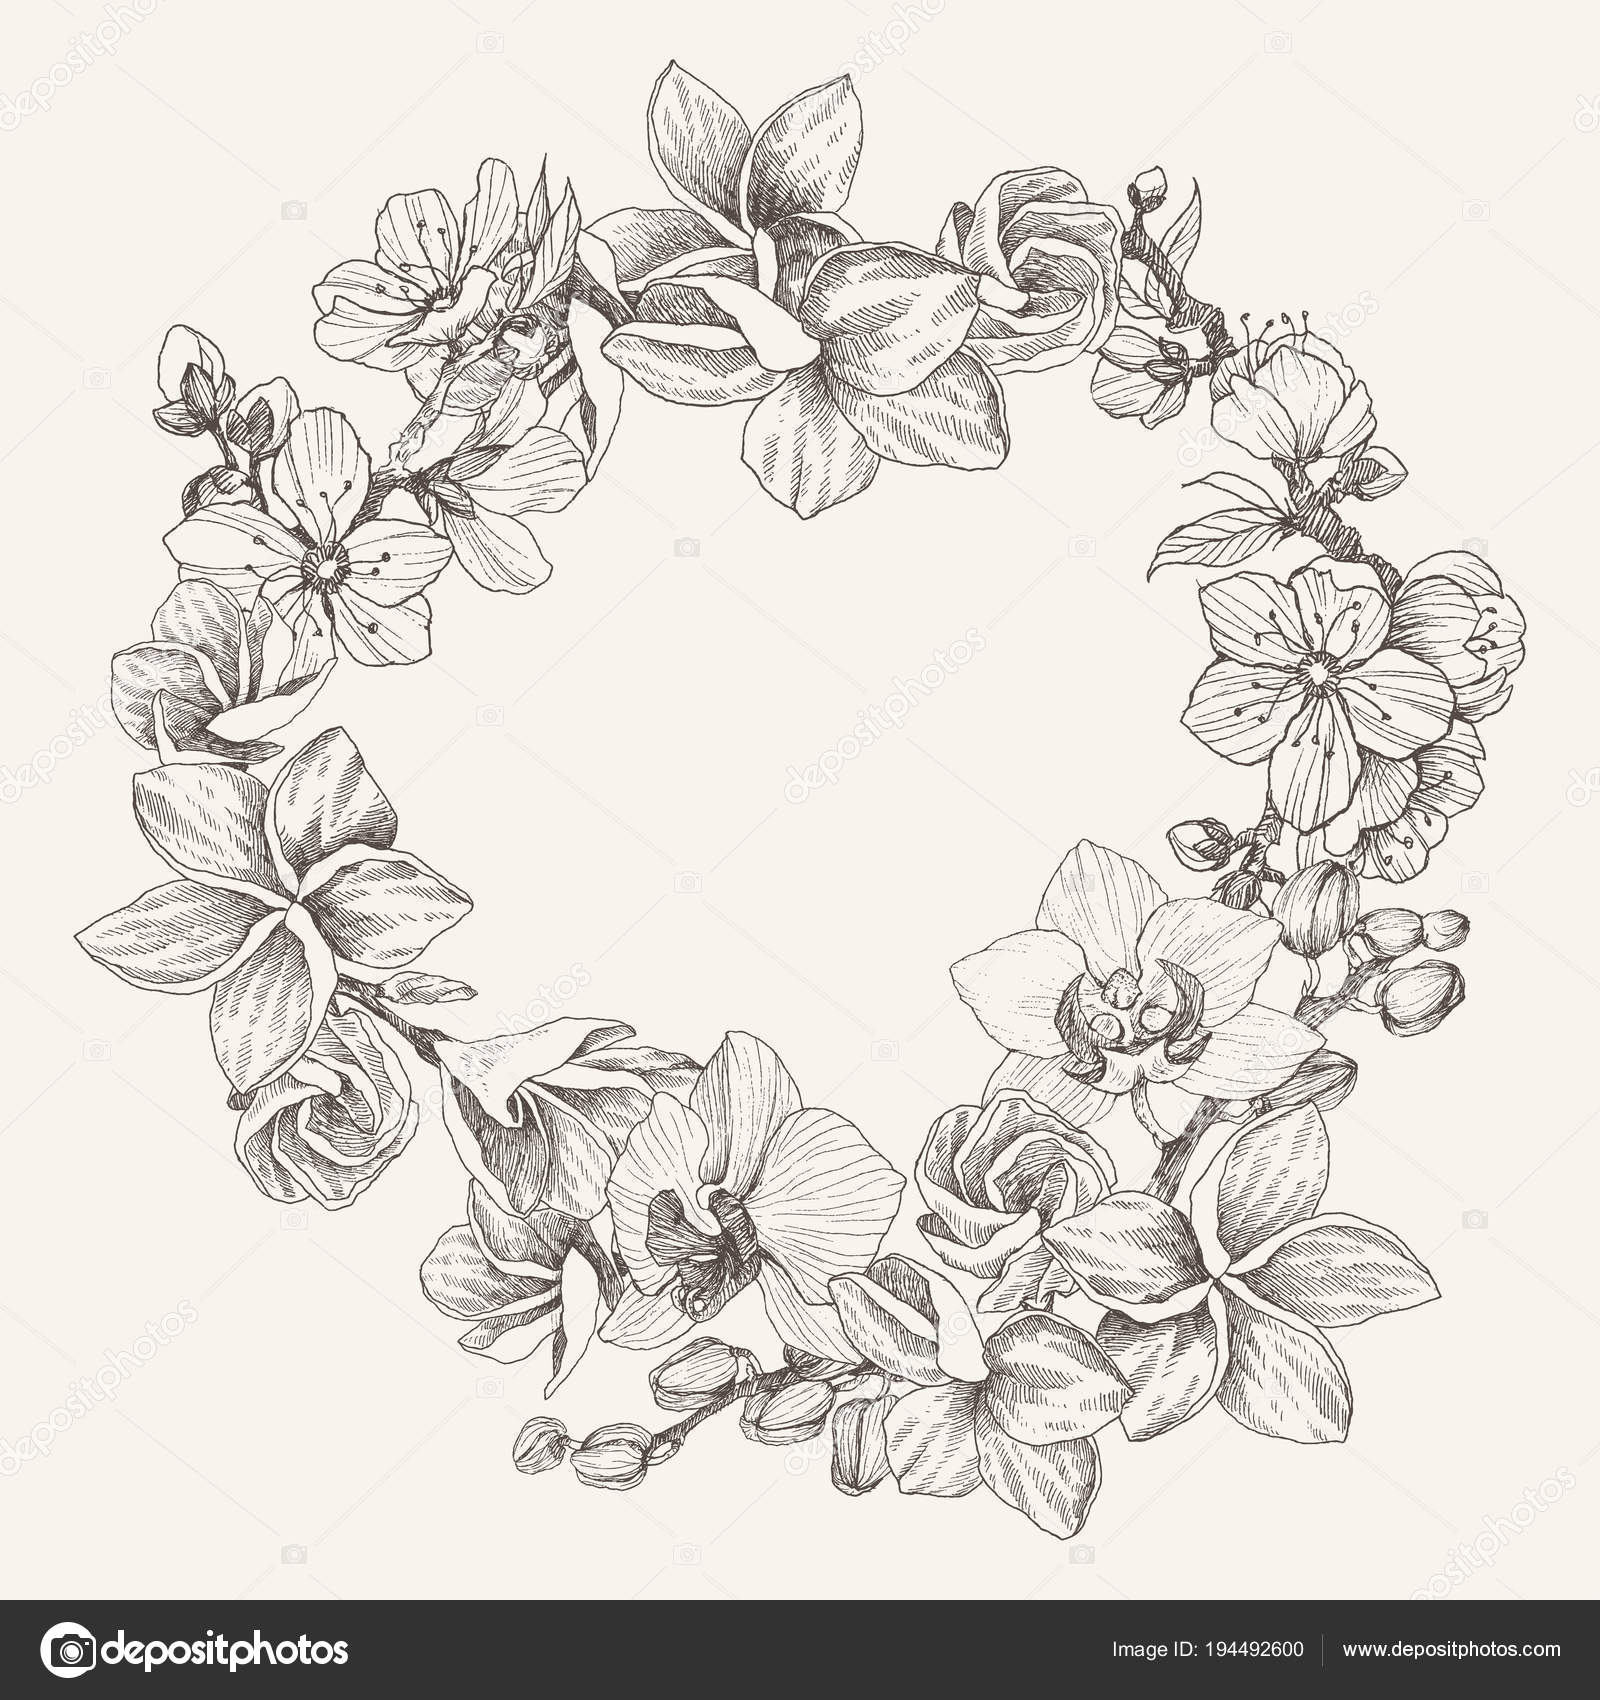 a2fb9d4ba Spting flowers drawing. Illustration and clip art on white backgrounds.  Idea for business visit card, typography, logo. — Vector by  ledepict.gmail.com